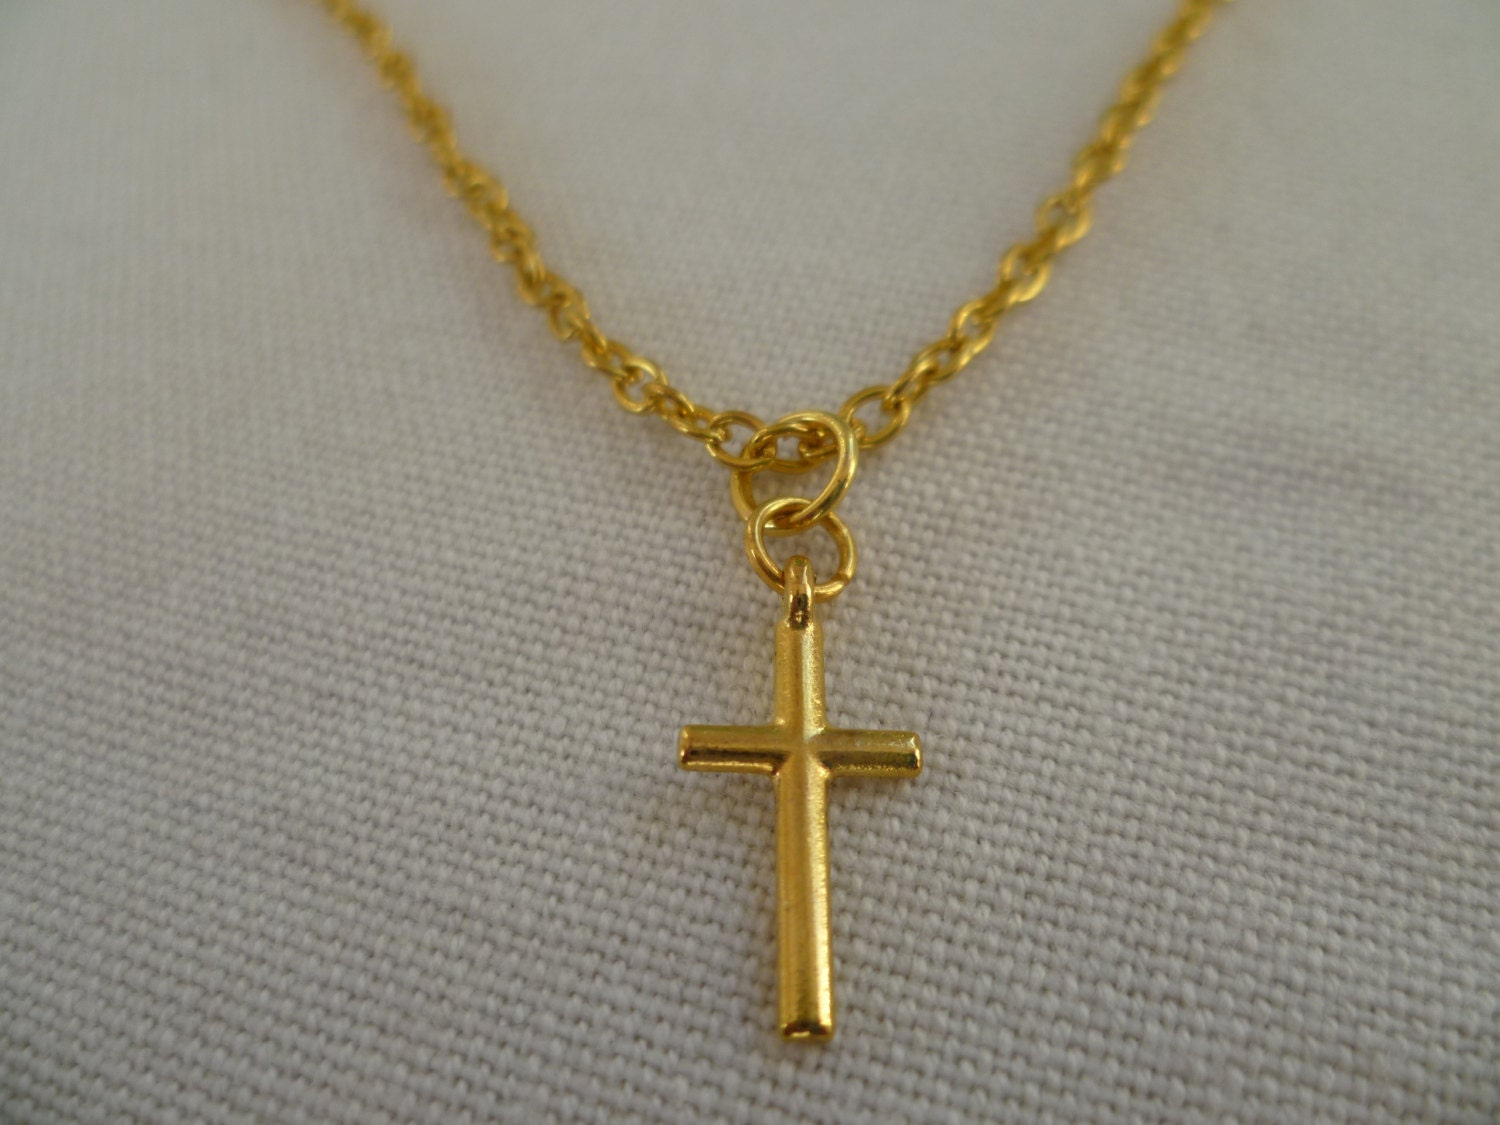 cross necklace gold cross necklace small gold cross